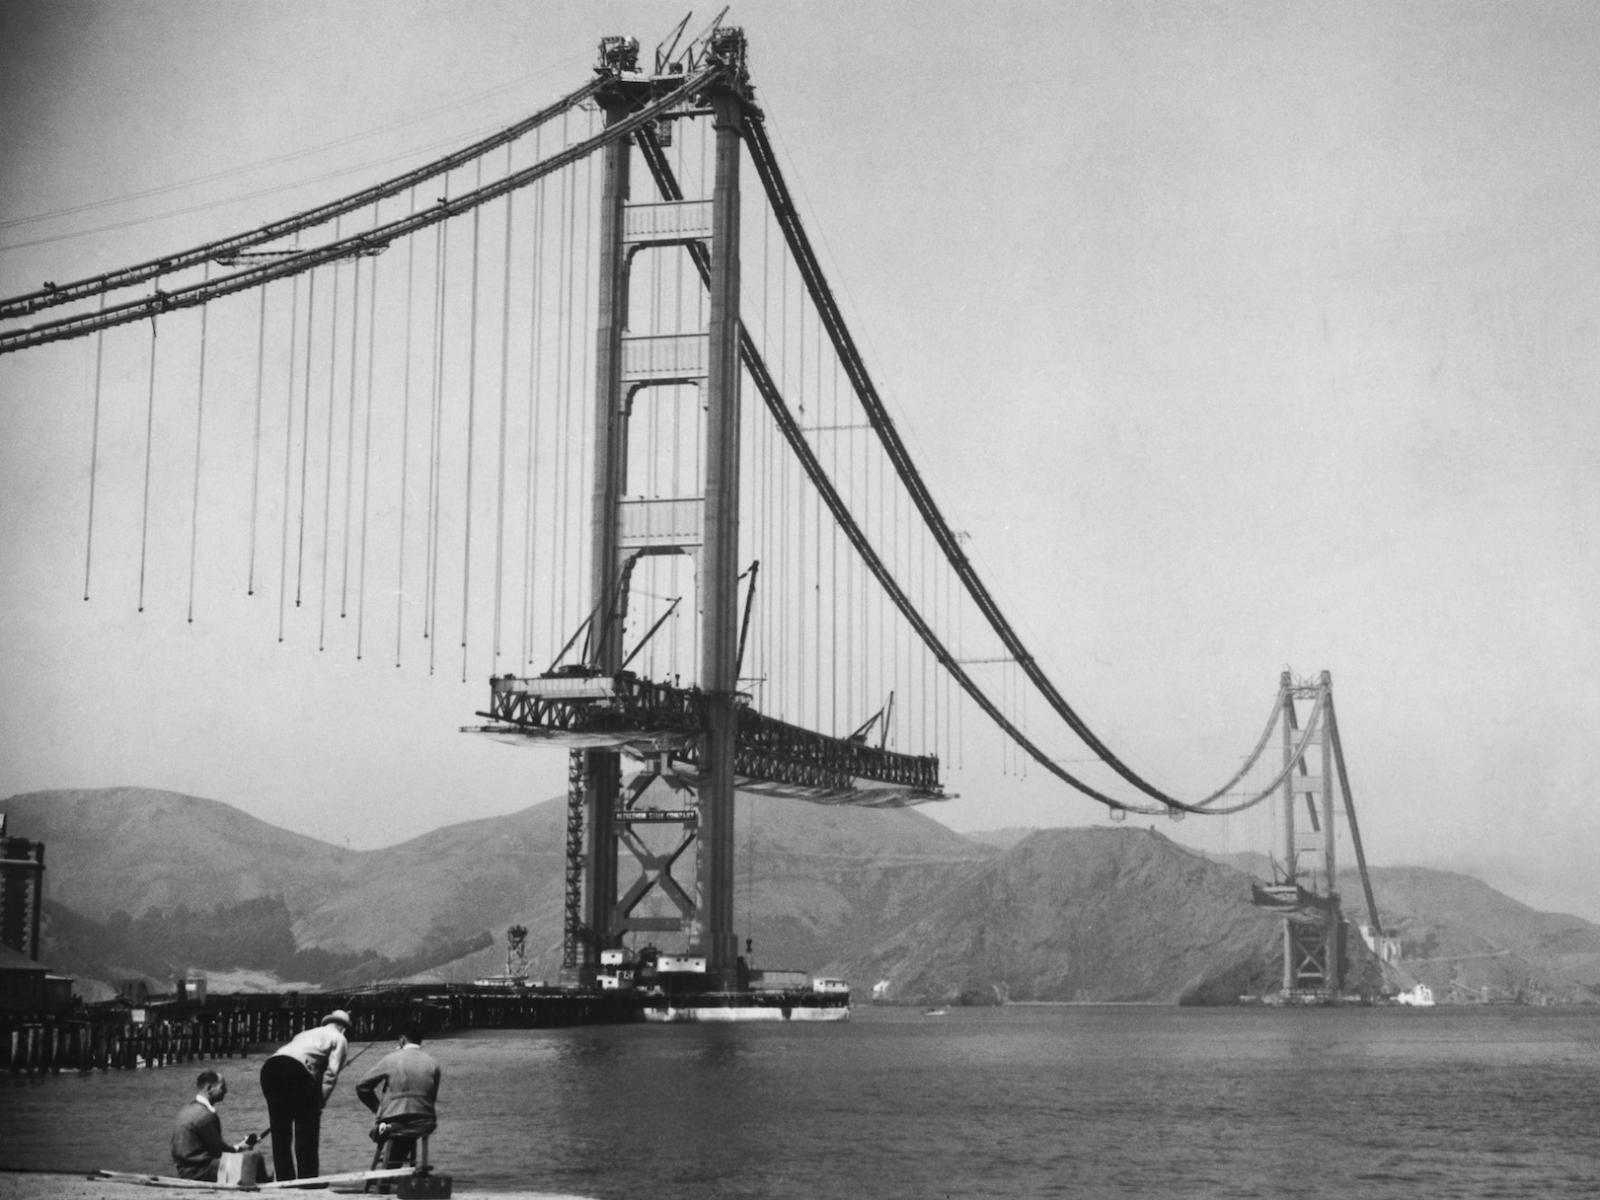 the-golden-gate-bridge-just-turned-80-years-old-take-a-look-at-its-historic-build.png